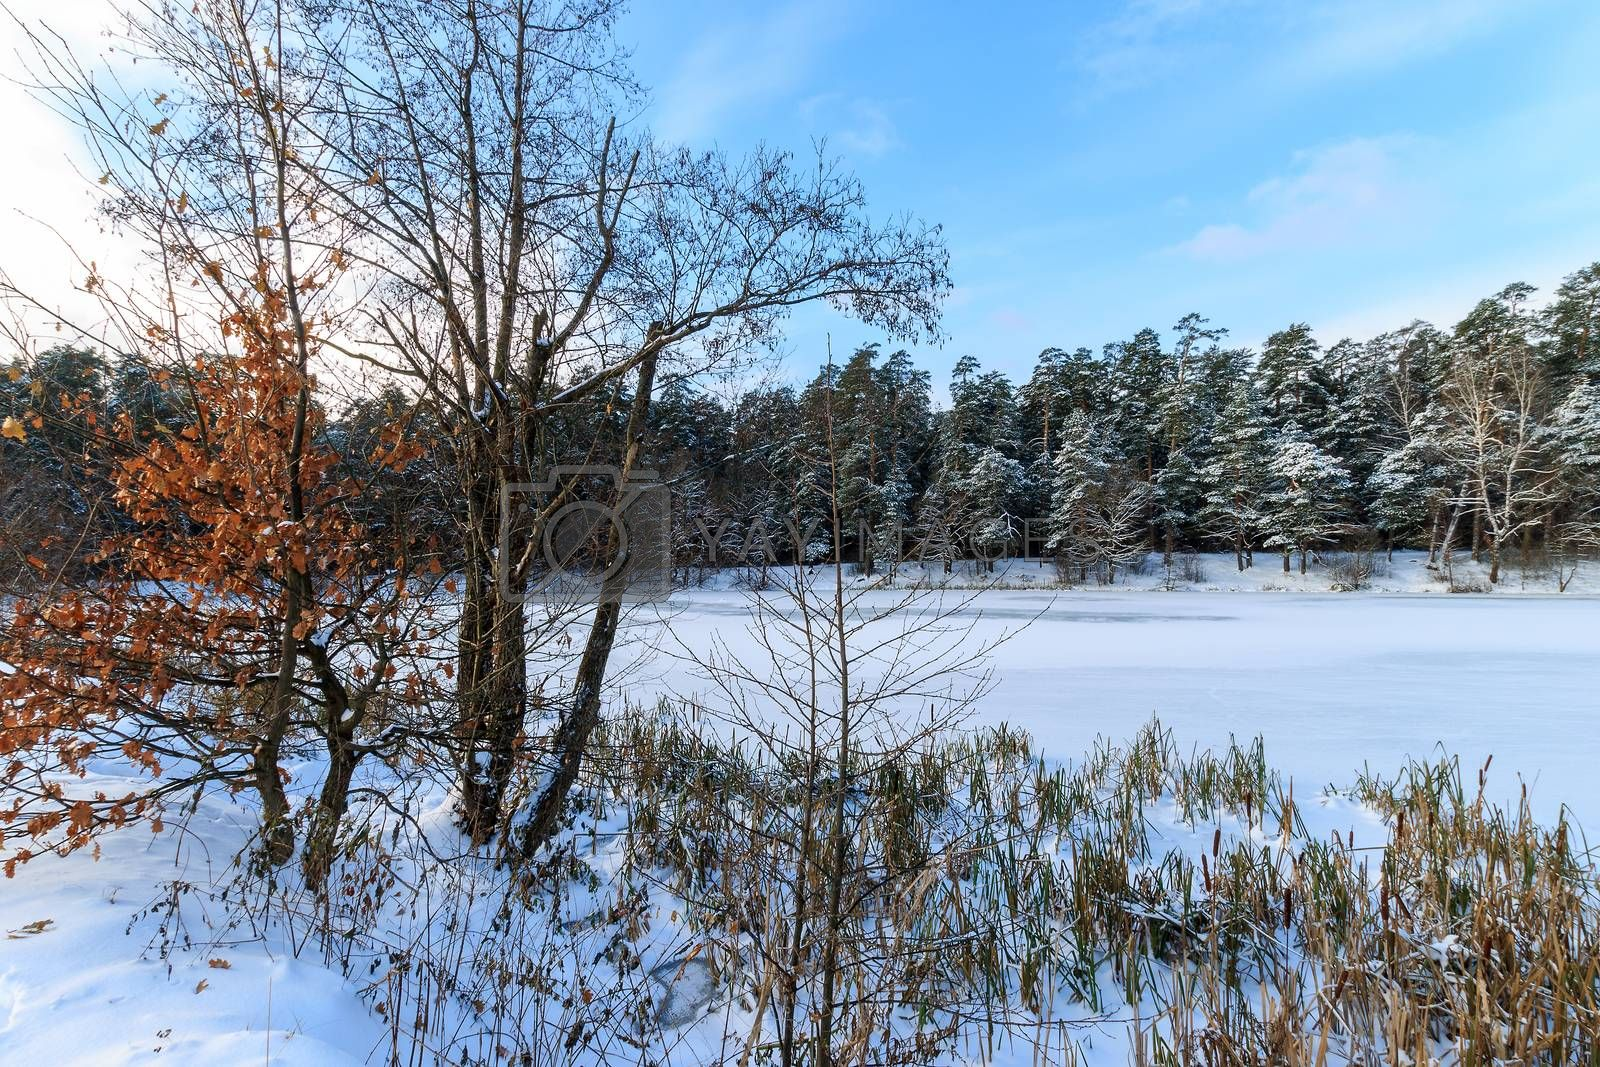 Pond covered with frost at pine forest at winter season. Snow landscape at sunny day.